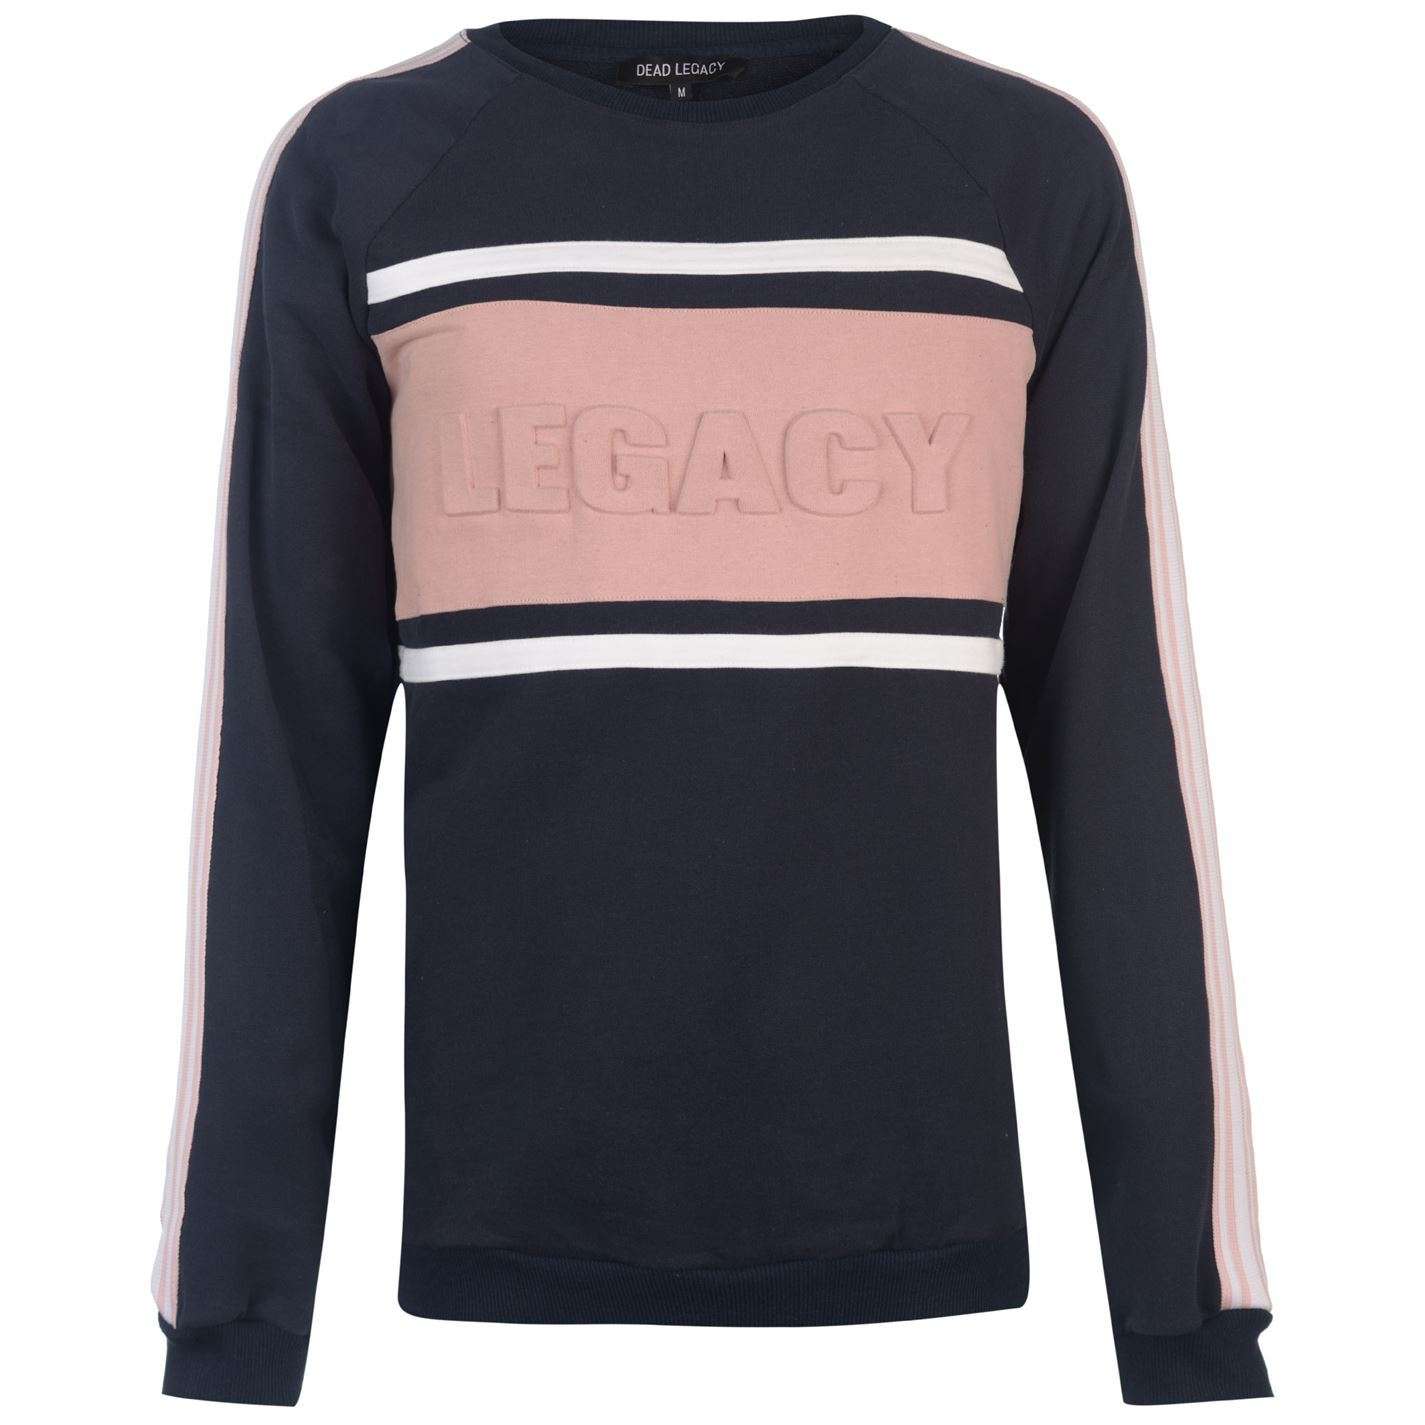 Dead Legacy Uomo Embossed Sweatshirt Uomo Legacy Sweater Top Jumper 9e0ca4